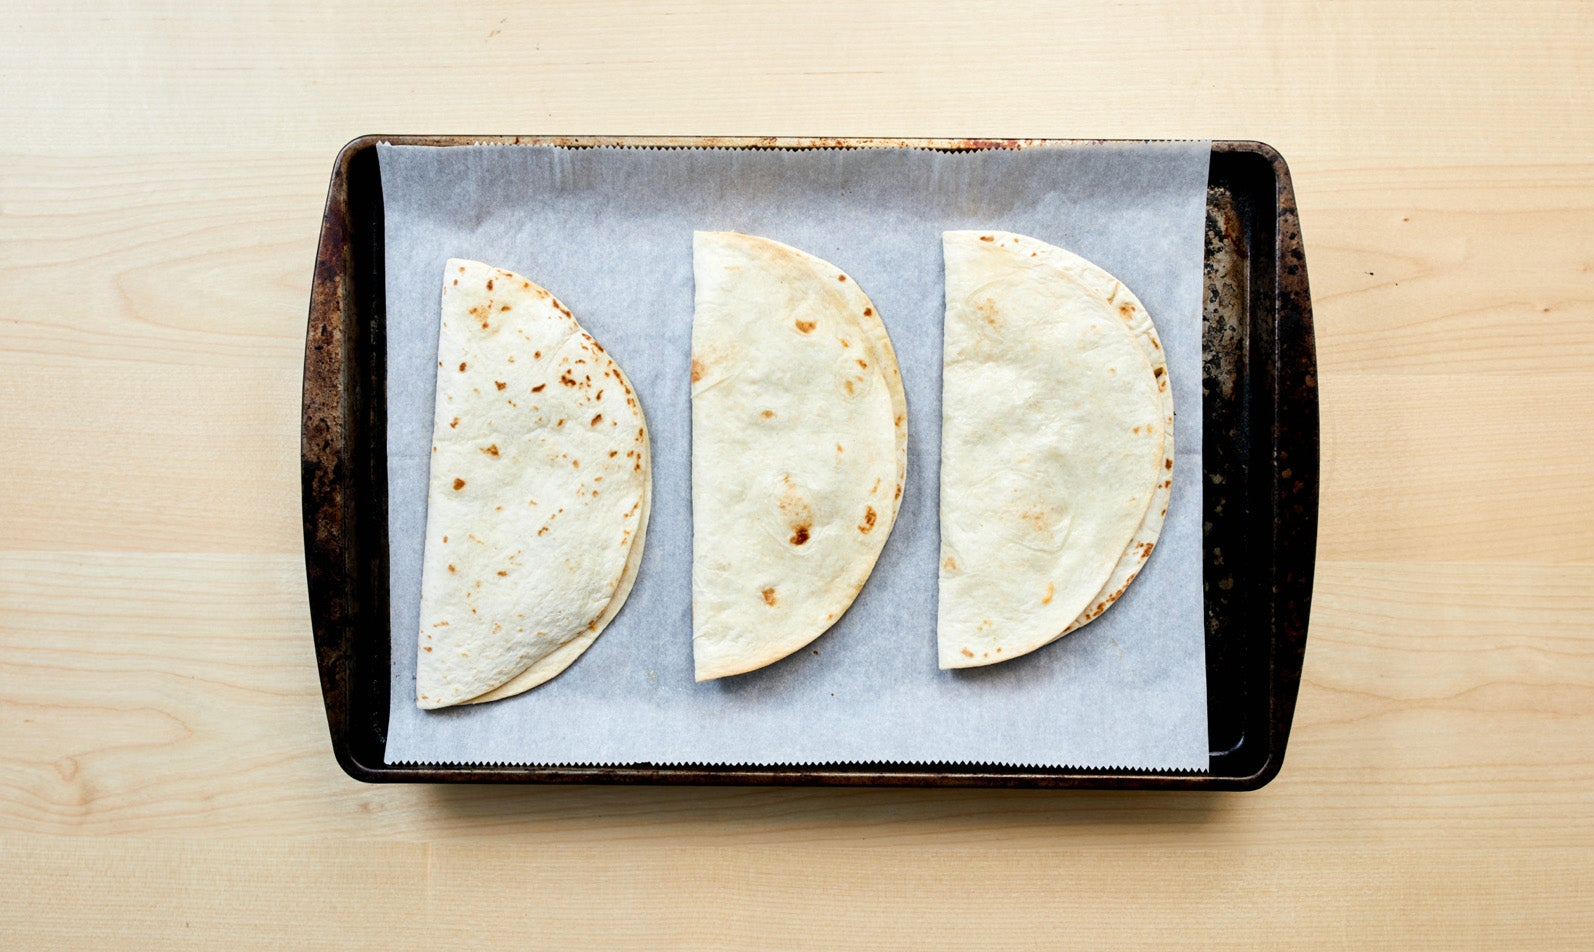 Ranch Baked Quesadillas & Science Experiments